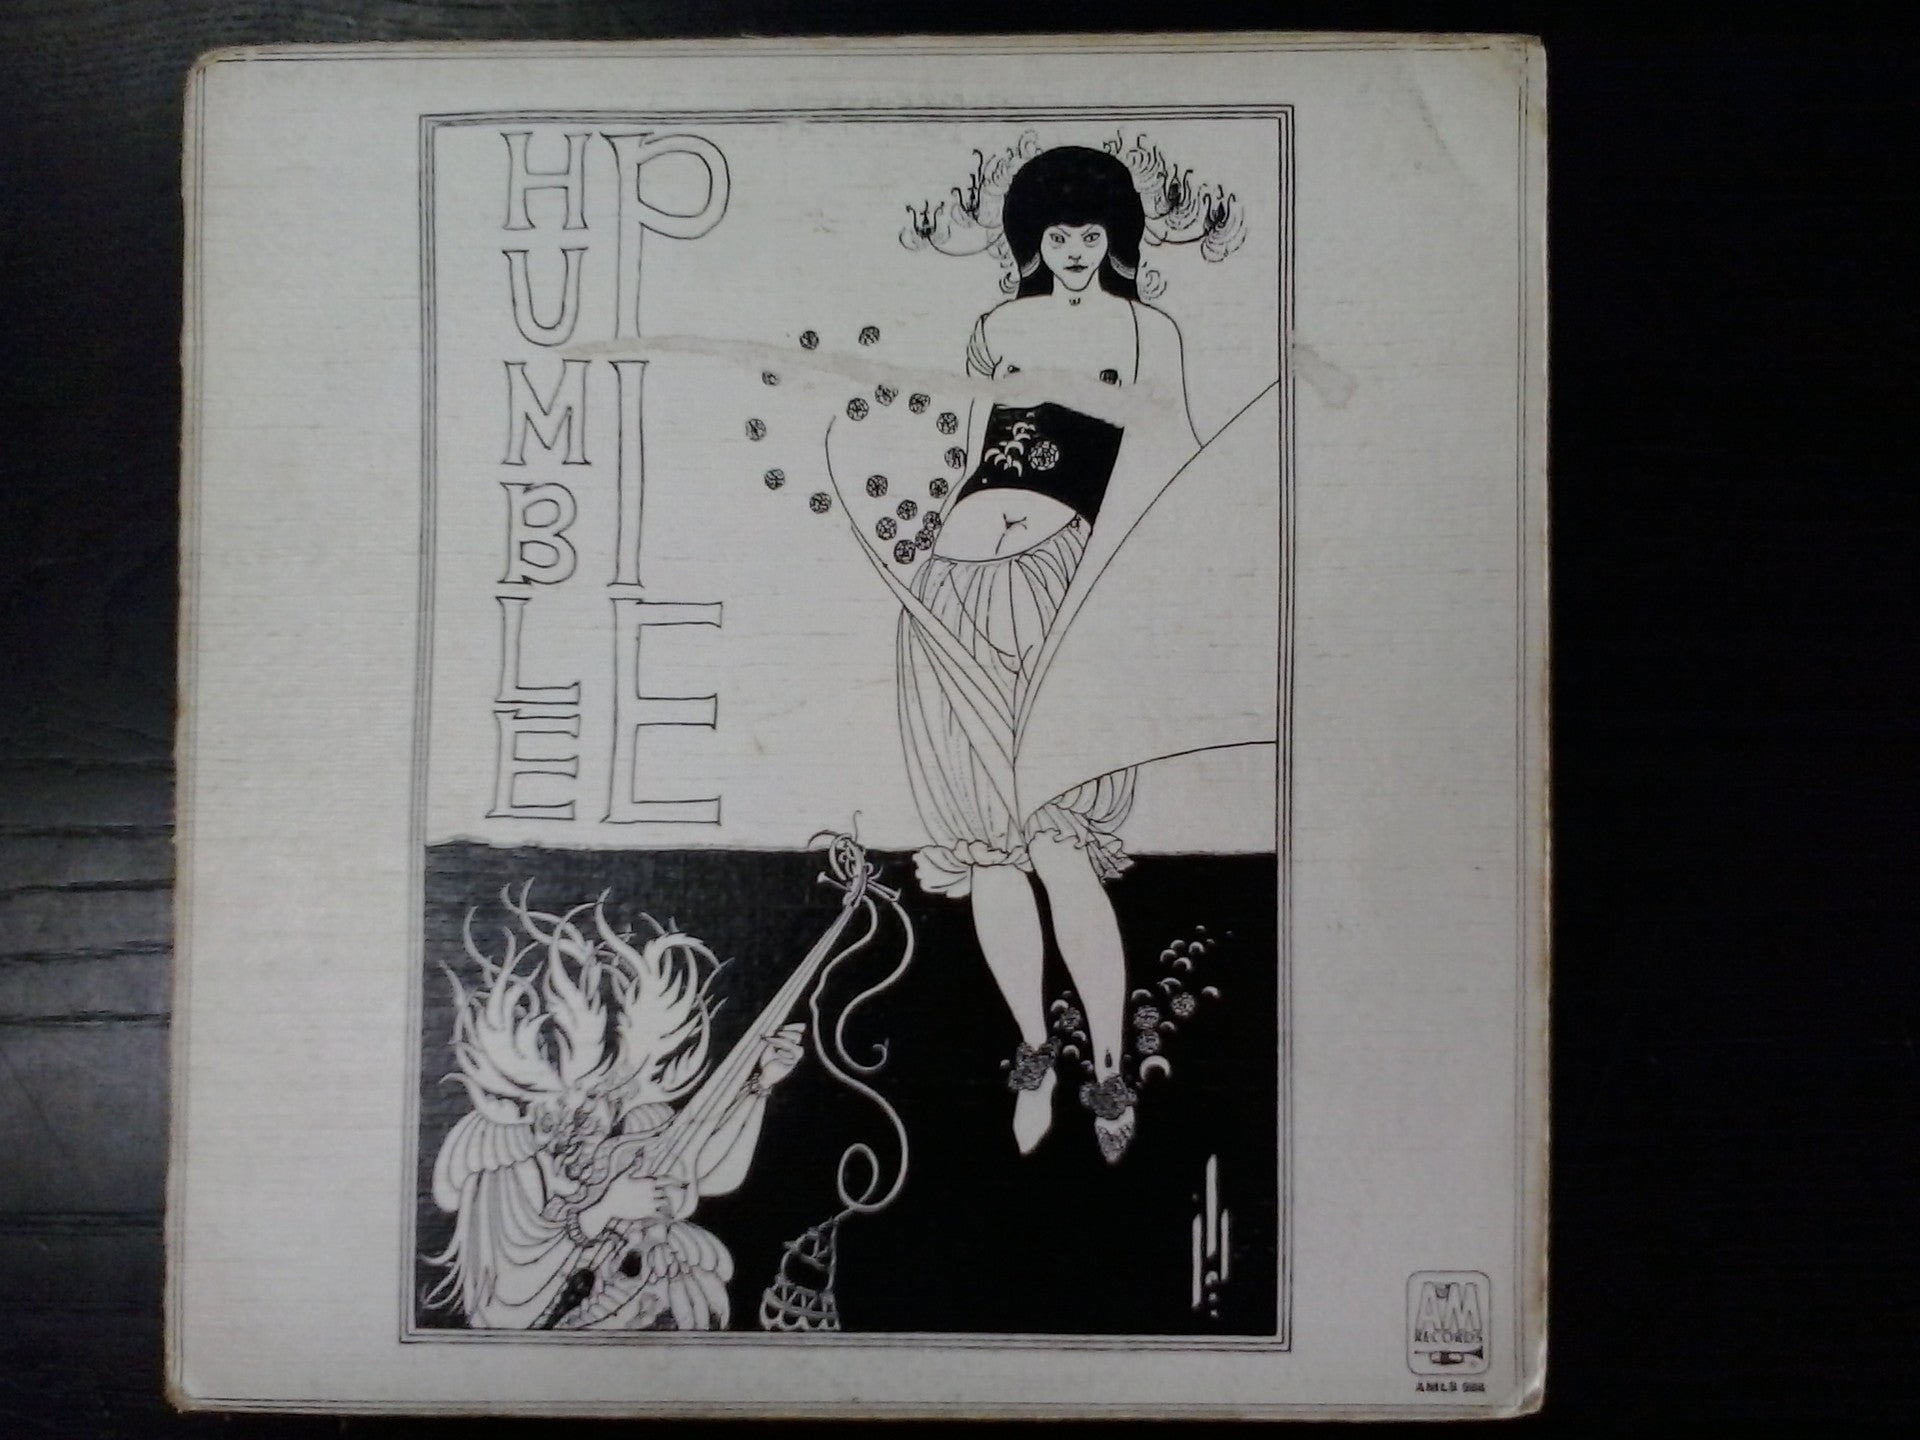 HUMBLE PIE-HUMBLE PIE LP VG COVER G